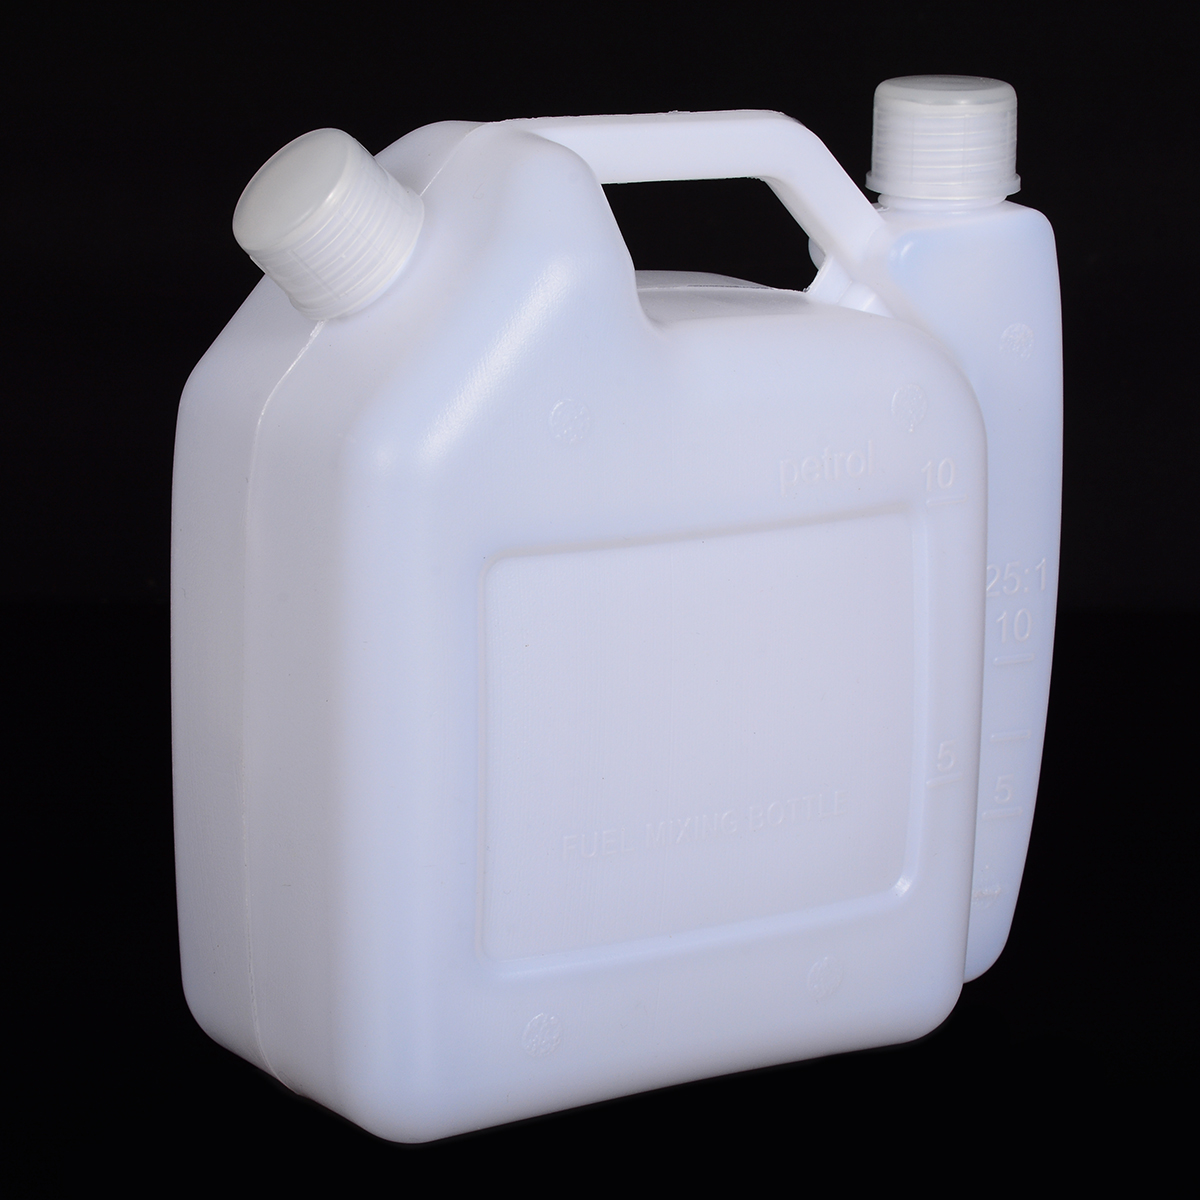 1PC 16x7.3x16.7cm 1.5L Litre 2-Stroke Petrol Fuel Oil Mixing Bottle Tank Garden Trimmer Chainsaw Tools Accessories